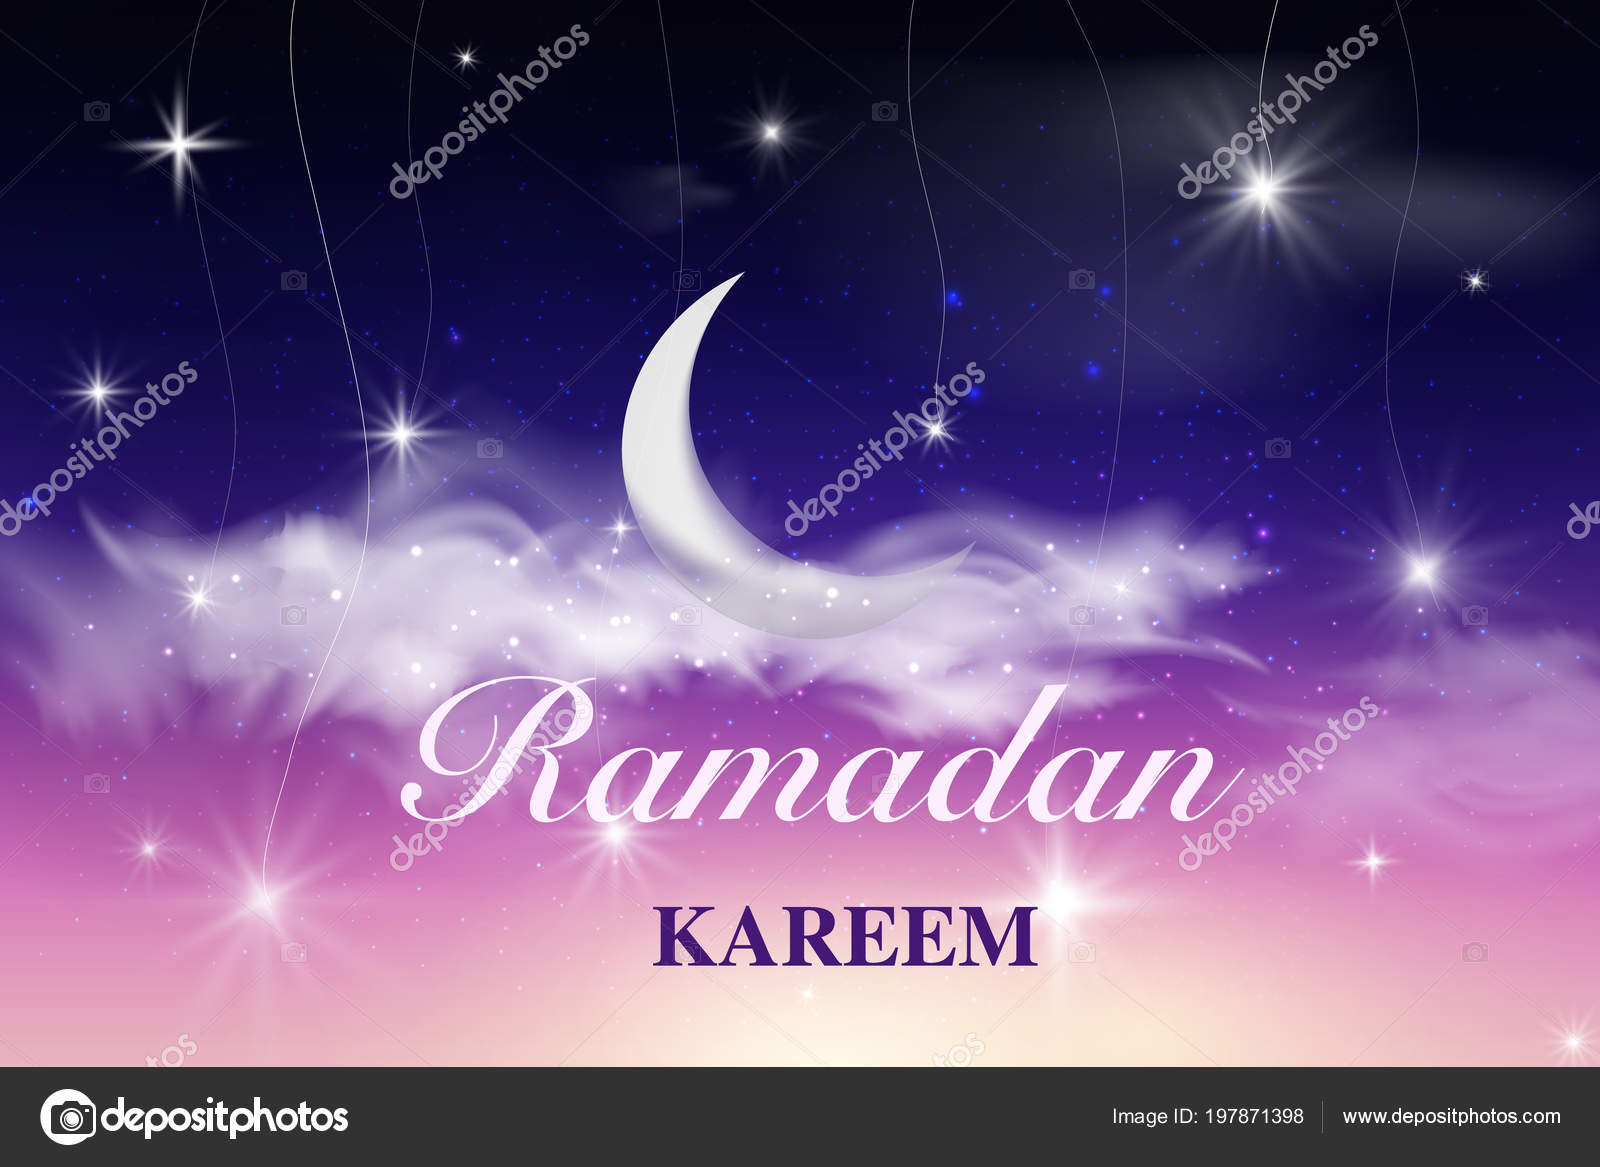 Ramadan greeting card with crescent ramadan kareem islamic design ramadan greeting card with crescent ramadan kareem islamic design crescent moon on starry background with m4hsunfo